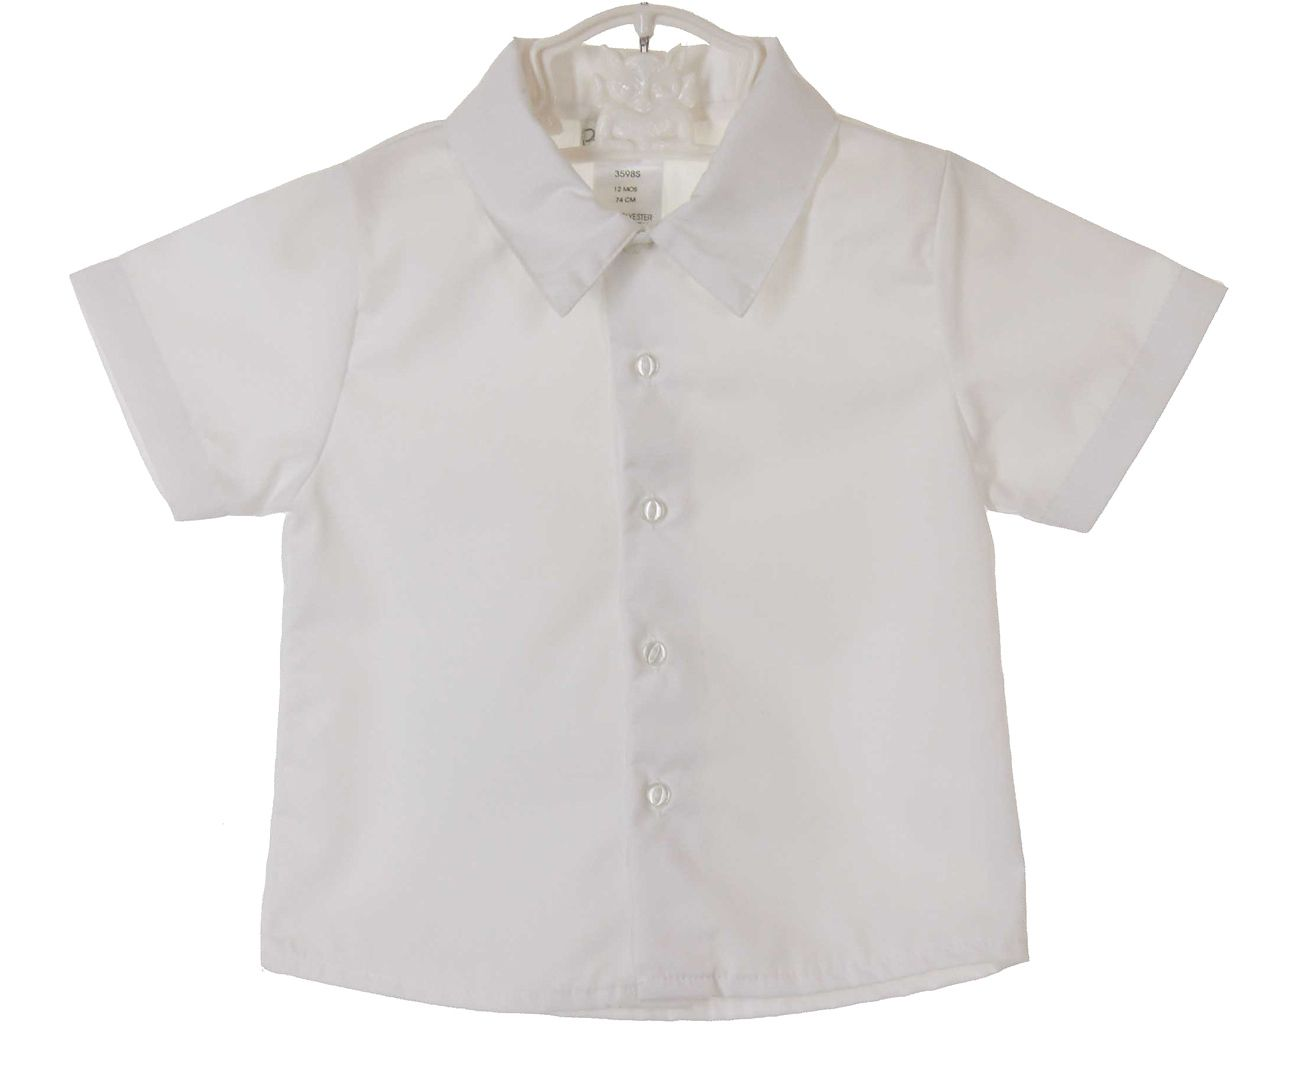 New Petit Ami White Dress Shirt With Short Sleeves 20 00 White Shirt Dress Boys White Dress Shirt Classic Baby Clothes [ 1089 x 1296 Pixel ]